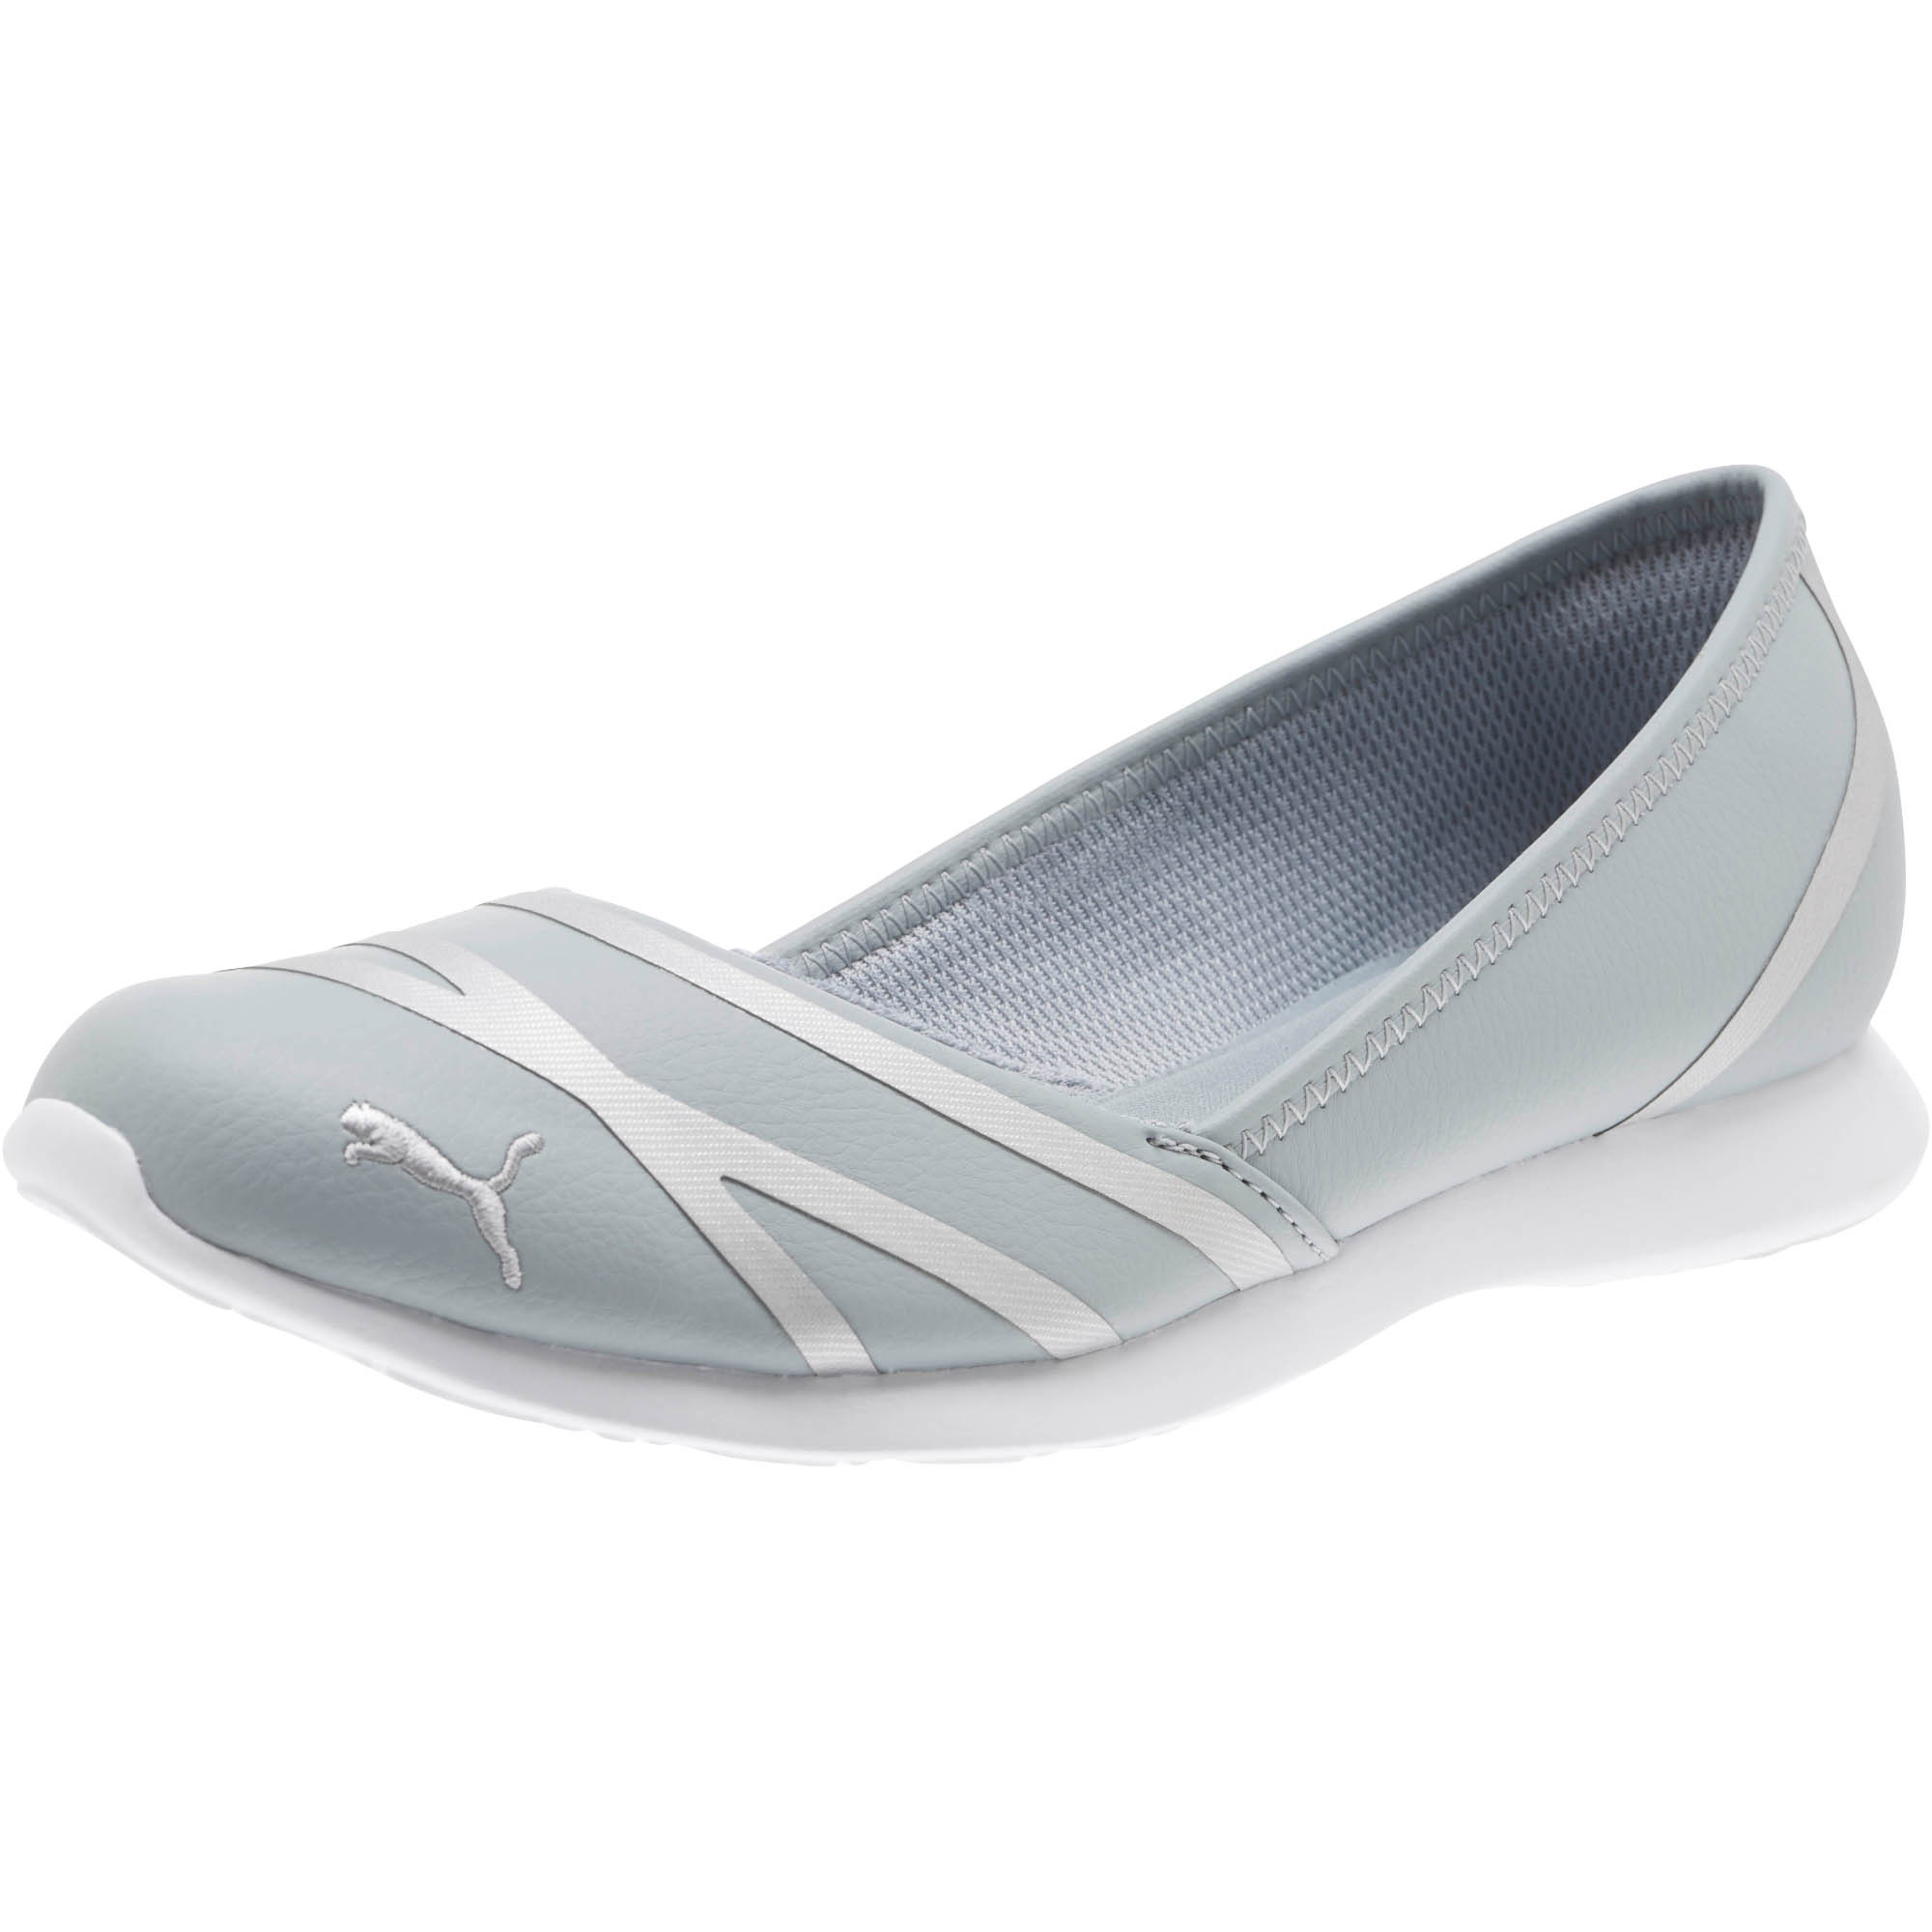 PUMA-PUMA-Vega-Ballet-Women-039-s-SL-Shoes-Women-Ballerina-Basics thumbnail 11